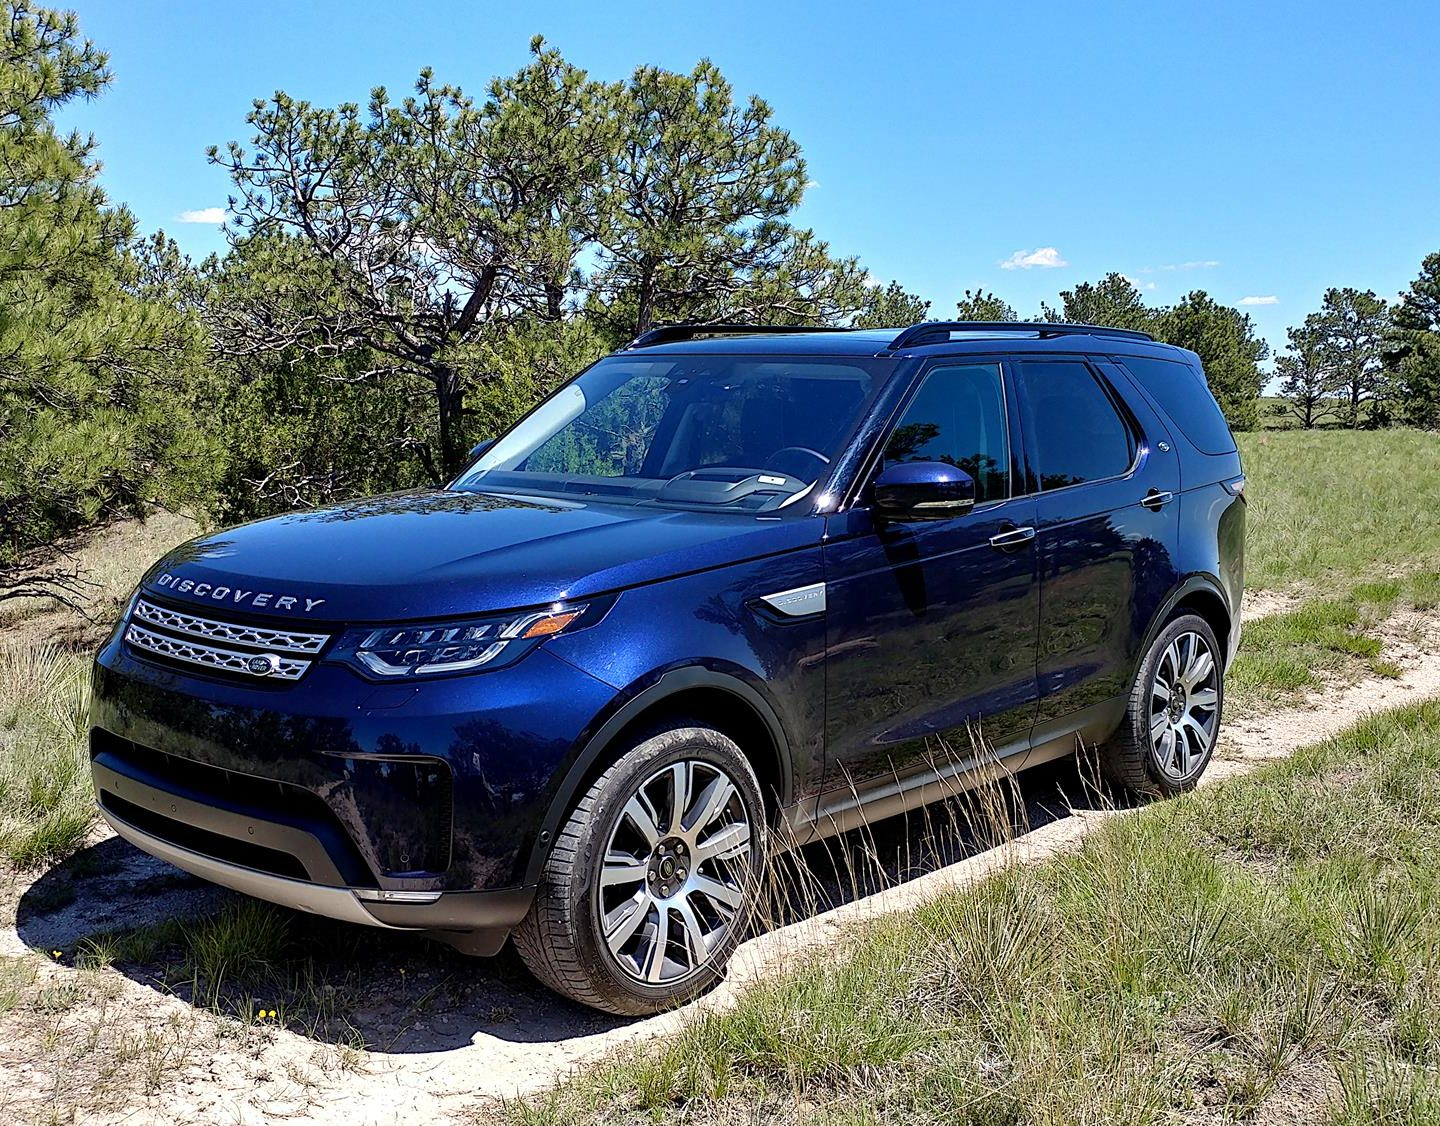 2019 Land Rover Discovery is Plush and Tumble